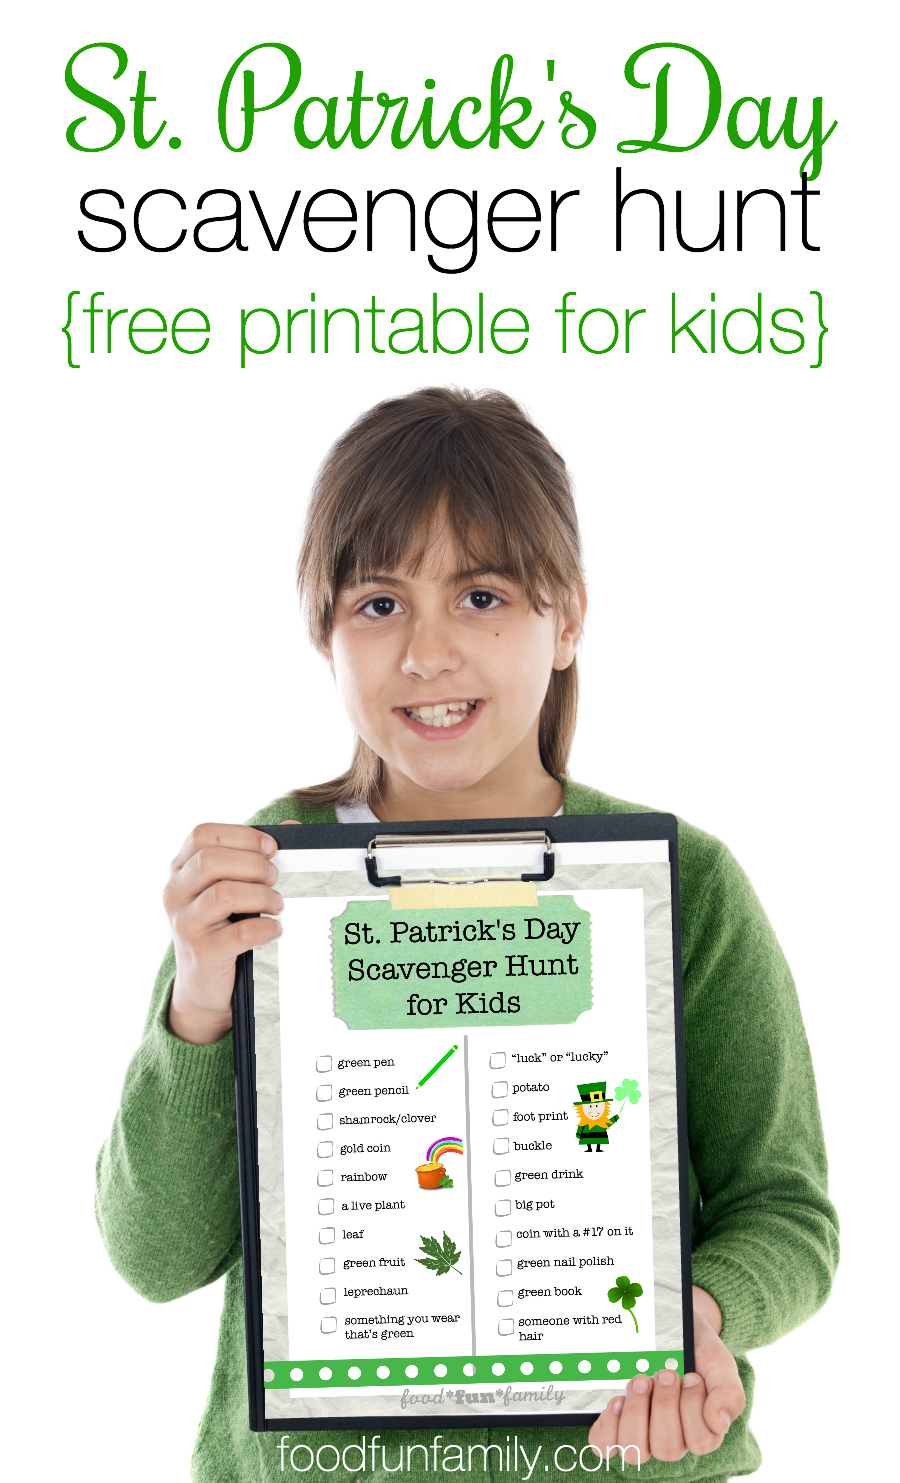 Looking for an idea for a fun activity to celebrate St. Patrick's Day with your kids? Enjoy this FREE printable St. Patrick's Day Scavenger Hunt game for Kids from Food Fun Family!